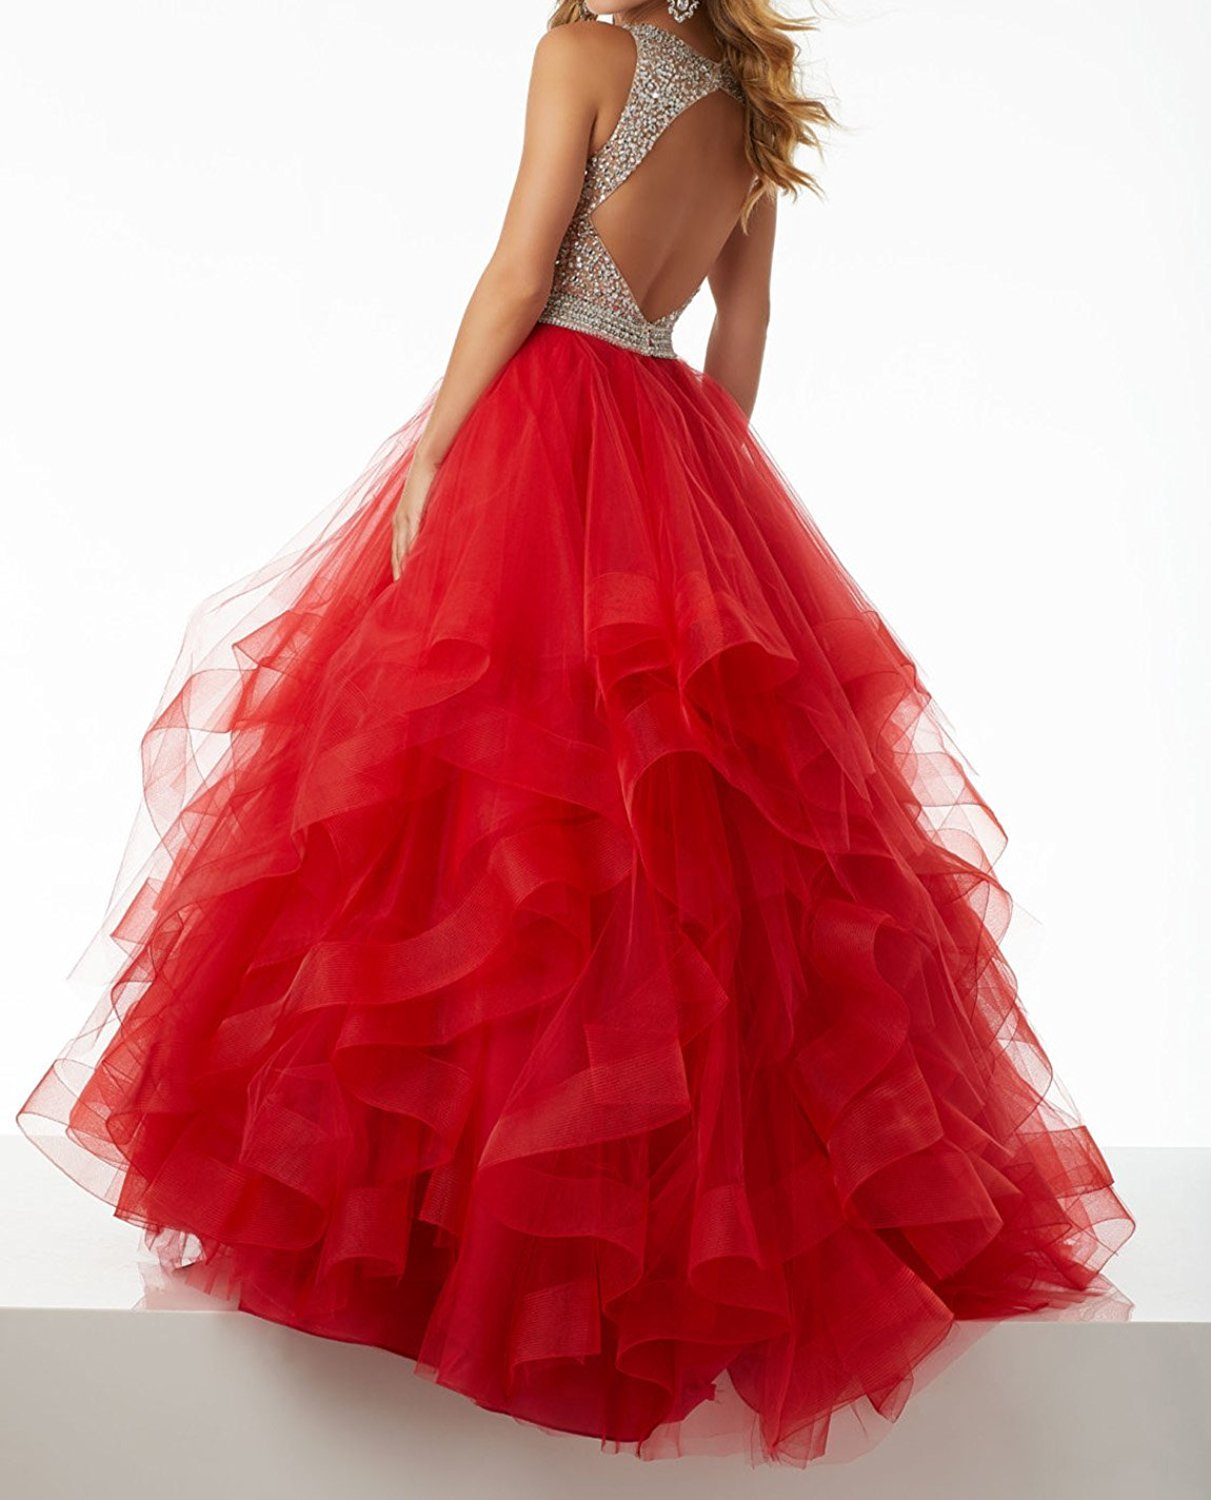 Sexy Beaded Prom Dresses Long Asymmetric Layered Tulle Formal Prom Ball Gowns